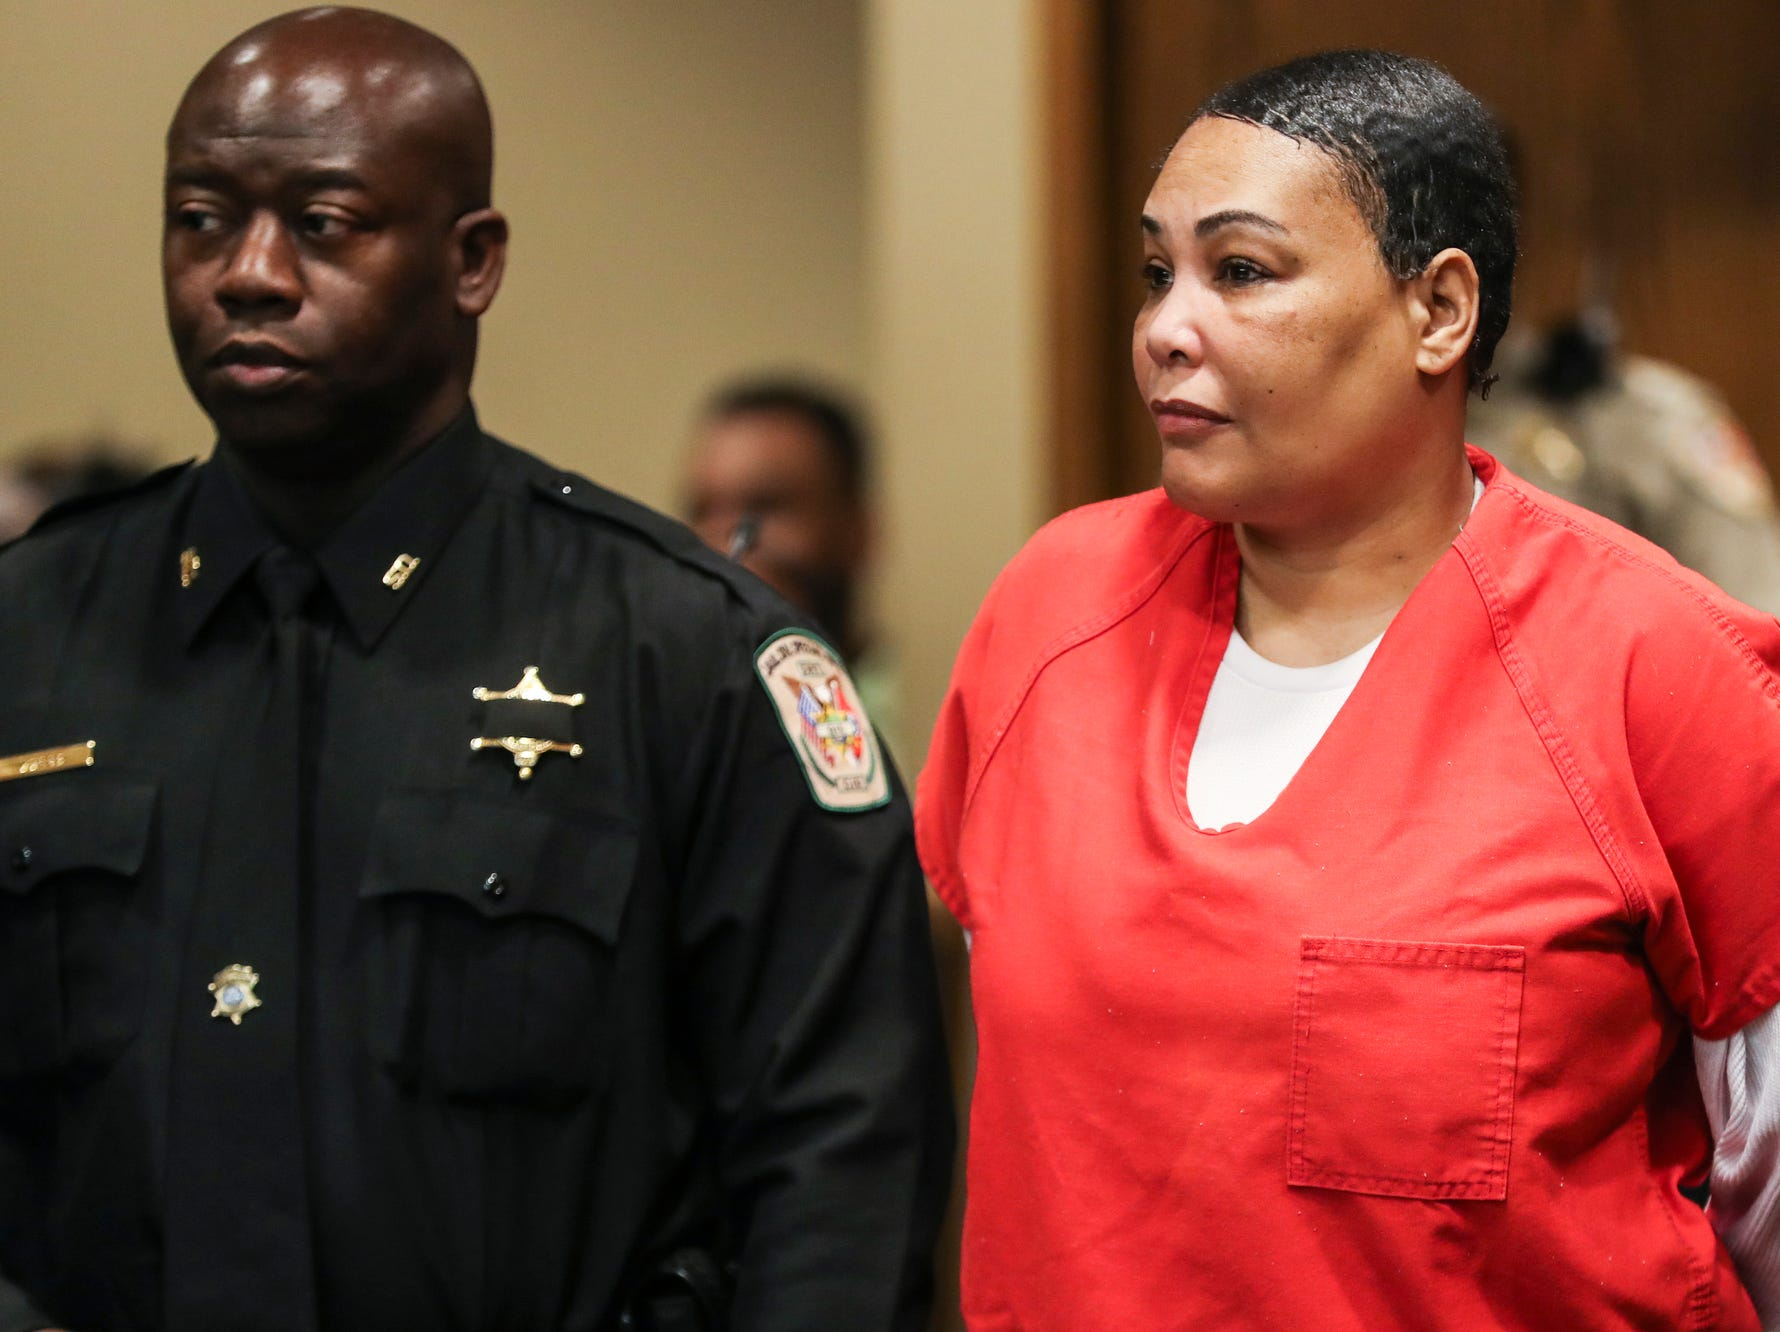 November 29 2018 - Sherra Wright appears in Judge Lee Coffee's courtroom where a trial date of Sept. 16, 2019 was set. Sherra Wright and Billy Ray Turner are charged with first-degree murder in Lorenzen Wright's July 2010 shooting death.